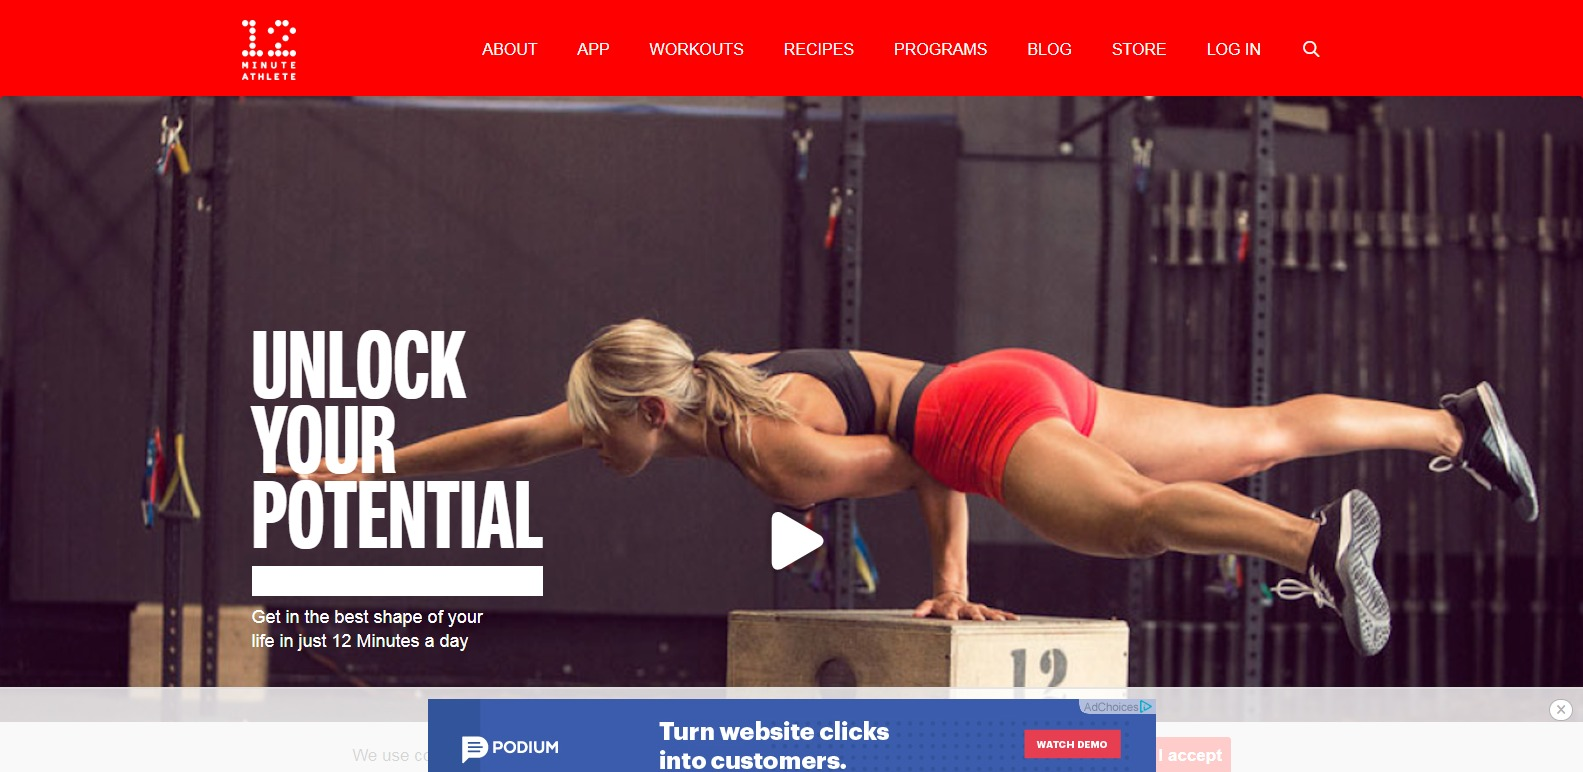 12 Minute Athlete physical trainers